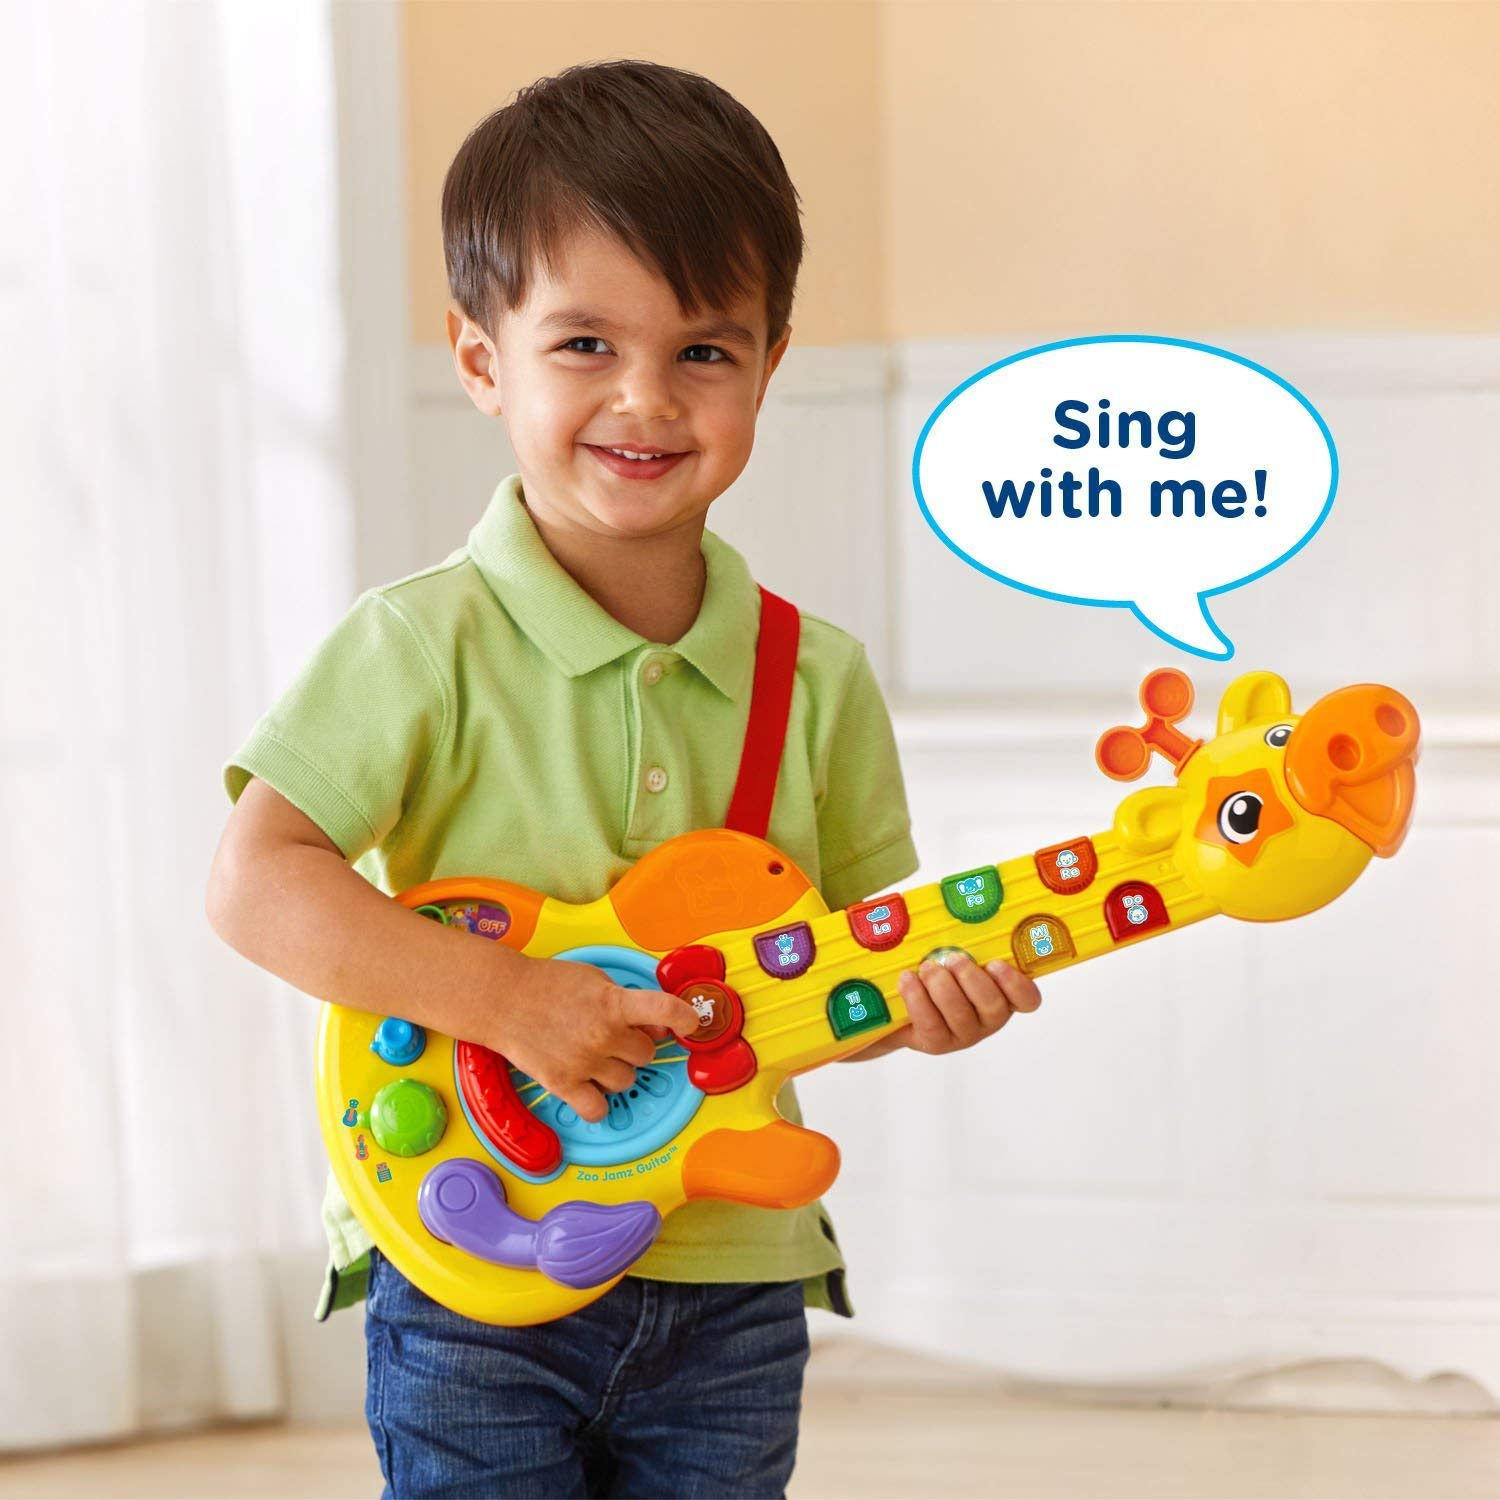 50 Best Educational Toys For 2 Year Olds. - TNCORE